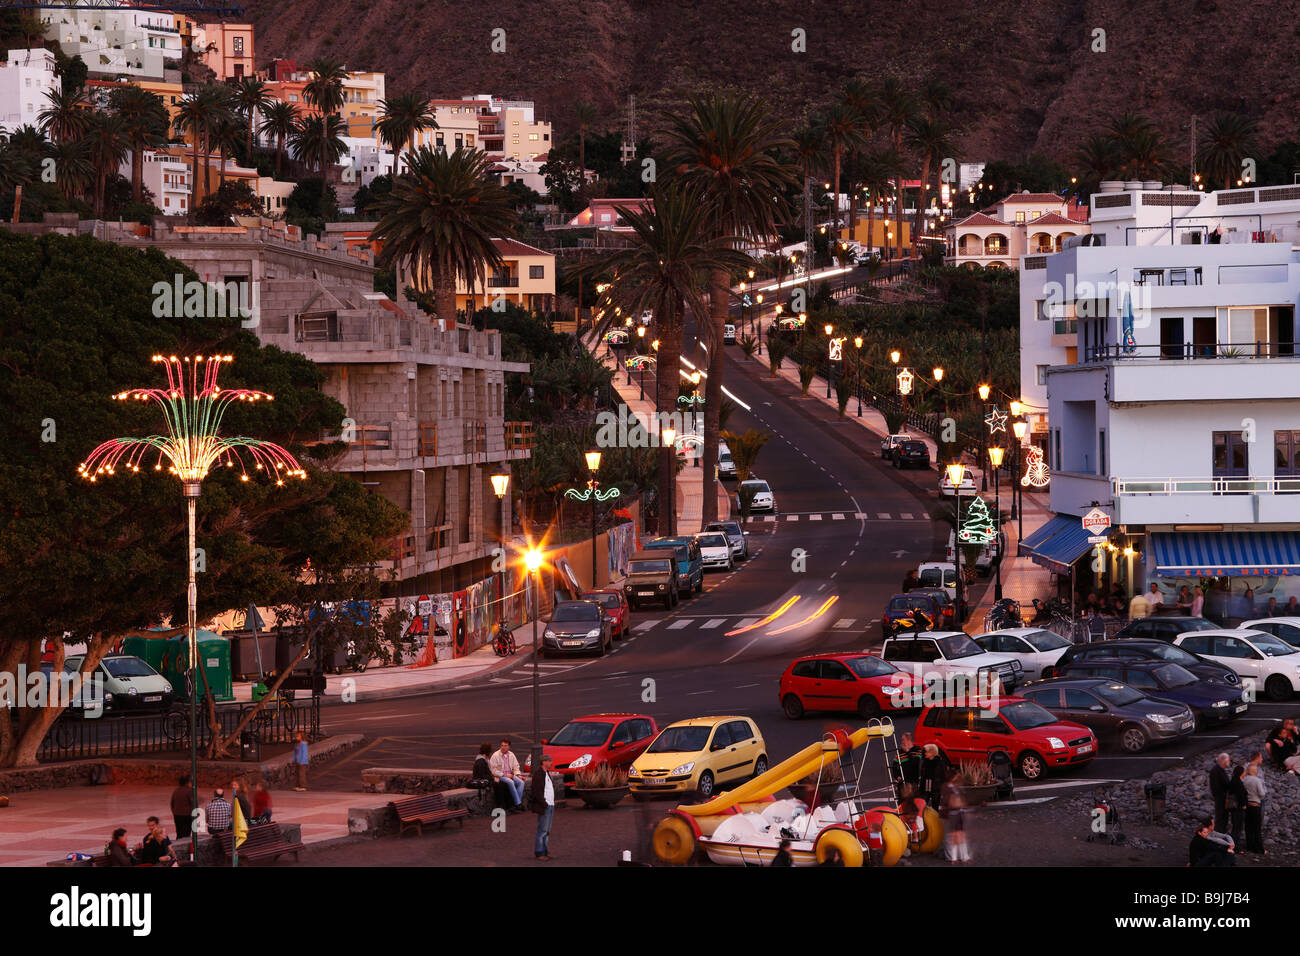 Streets with Christmas decoration at nighttime in La Playa, Valle Gran Rey, La Gomera, Canaries, Canary Islands, - Stock Image